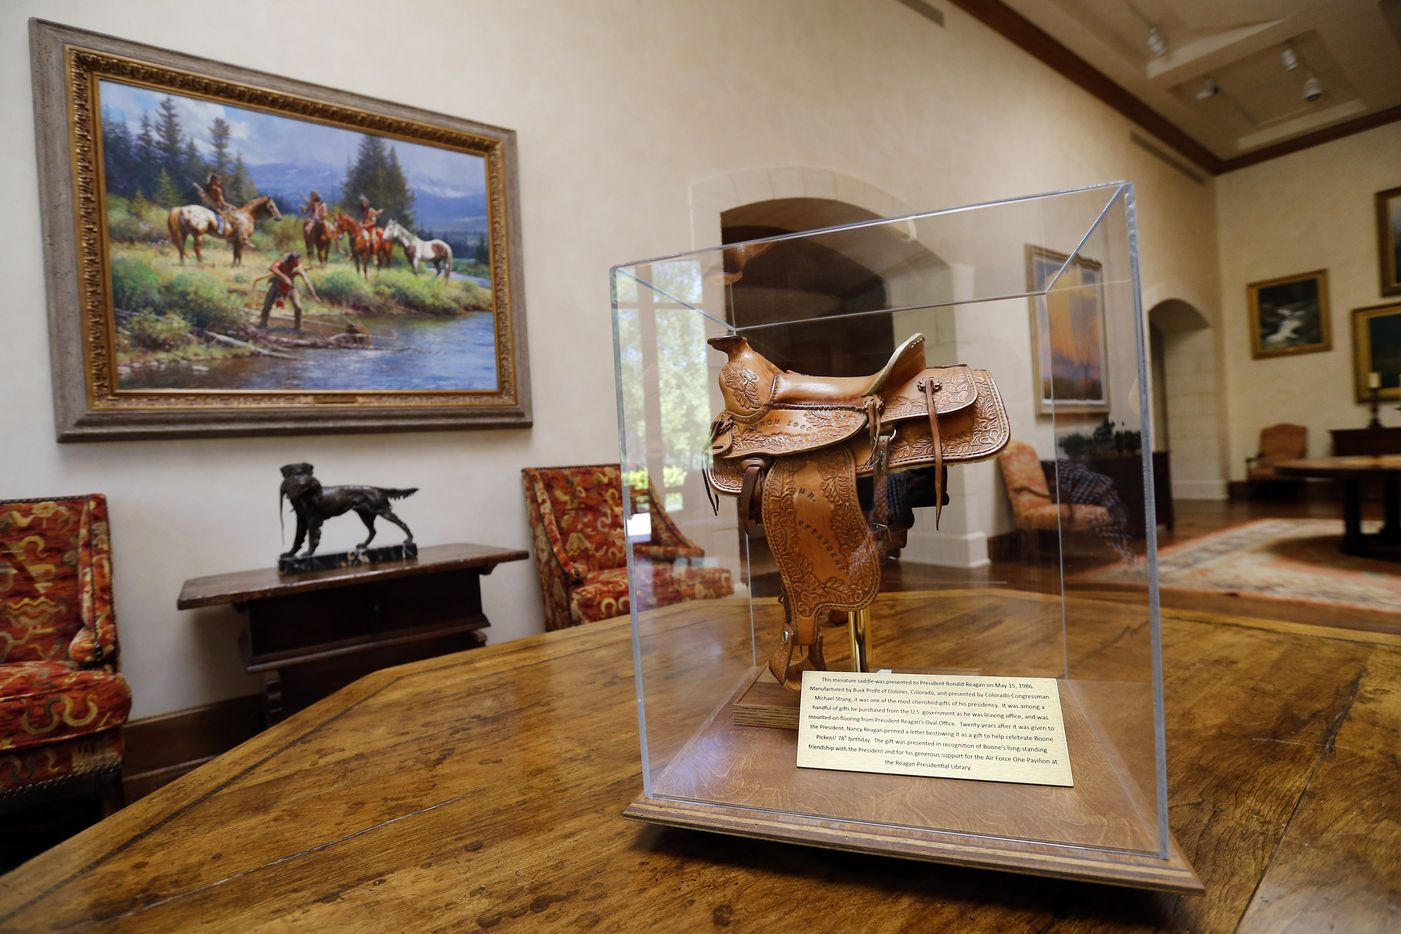 A small saddle once owned by President Ronald Reagan was given to T. Boone Pickens by Nancy Reagan and is now on display in the art gallery.